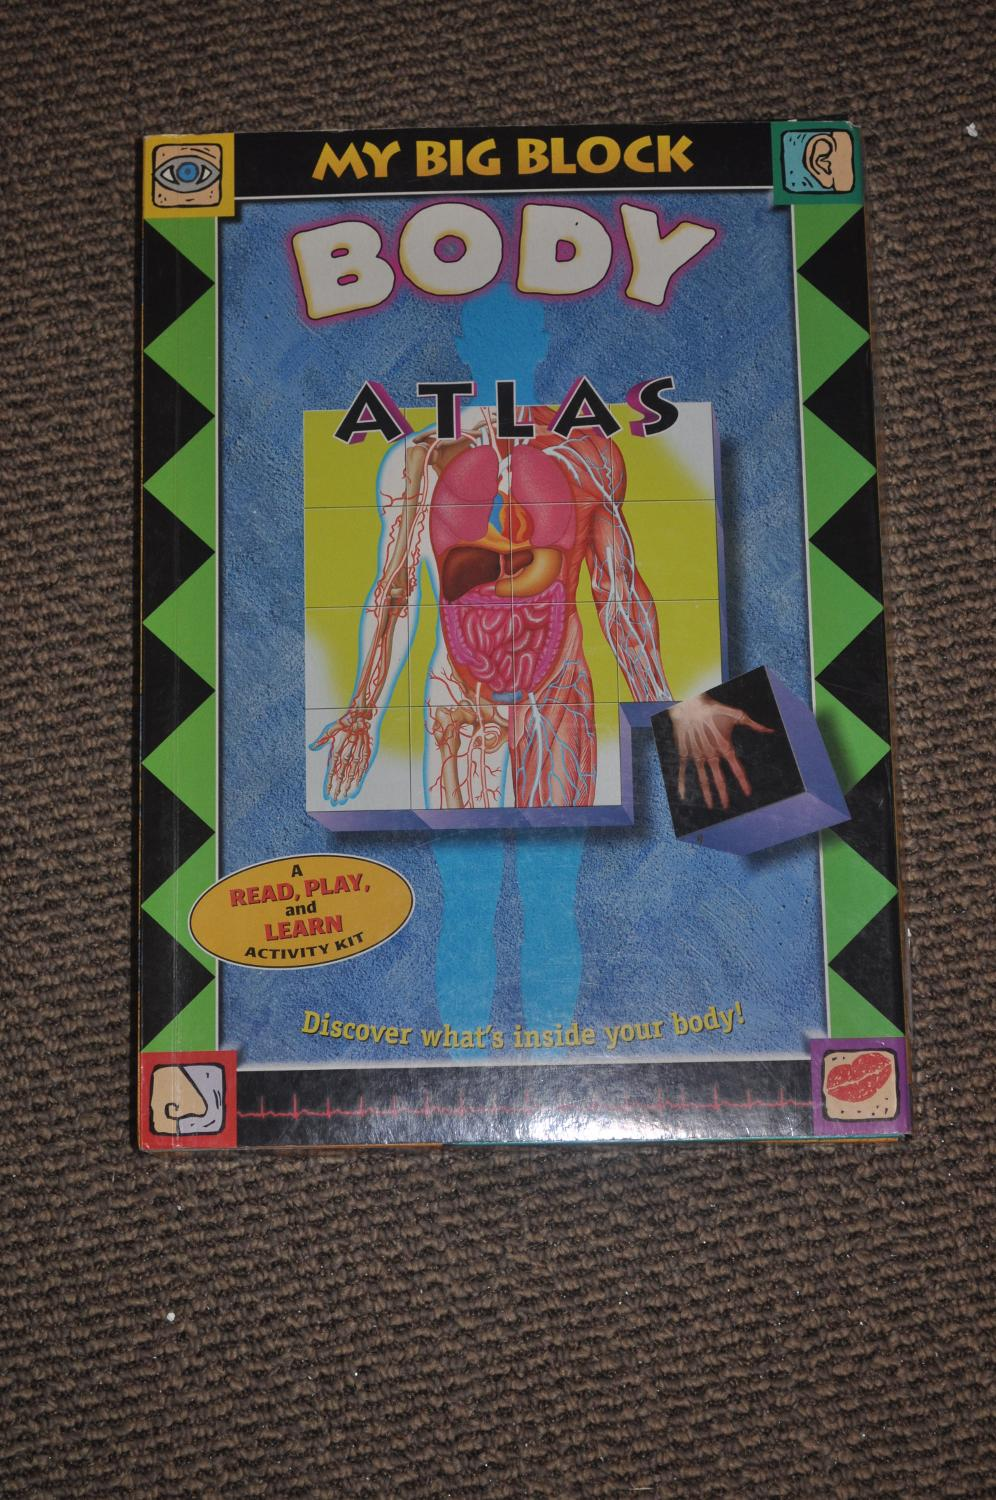 Best My Big Block Body Atlas A Ready Play And Learn Activity Kit